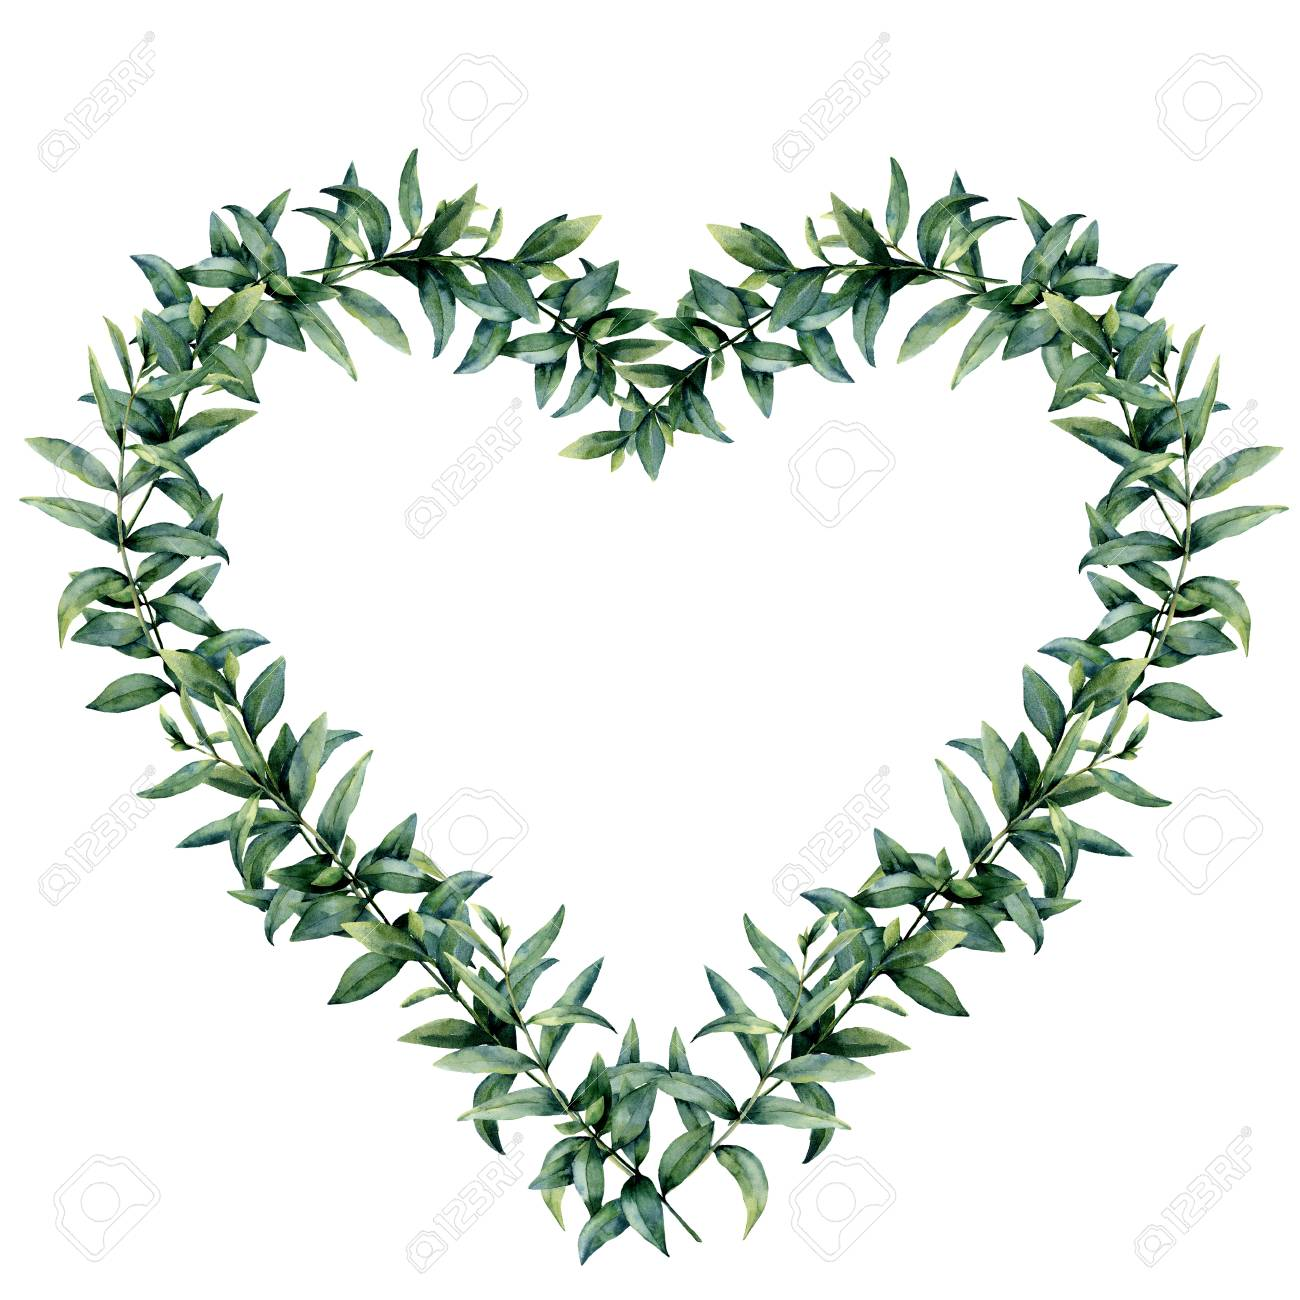 Watercolor eucalyptus heart wreath. Hand painted border with eucalyptus branch and leaves isolated on white background. Botanical illustration for design. Valentines Day print. - 93474207